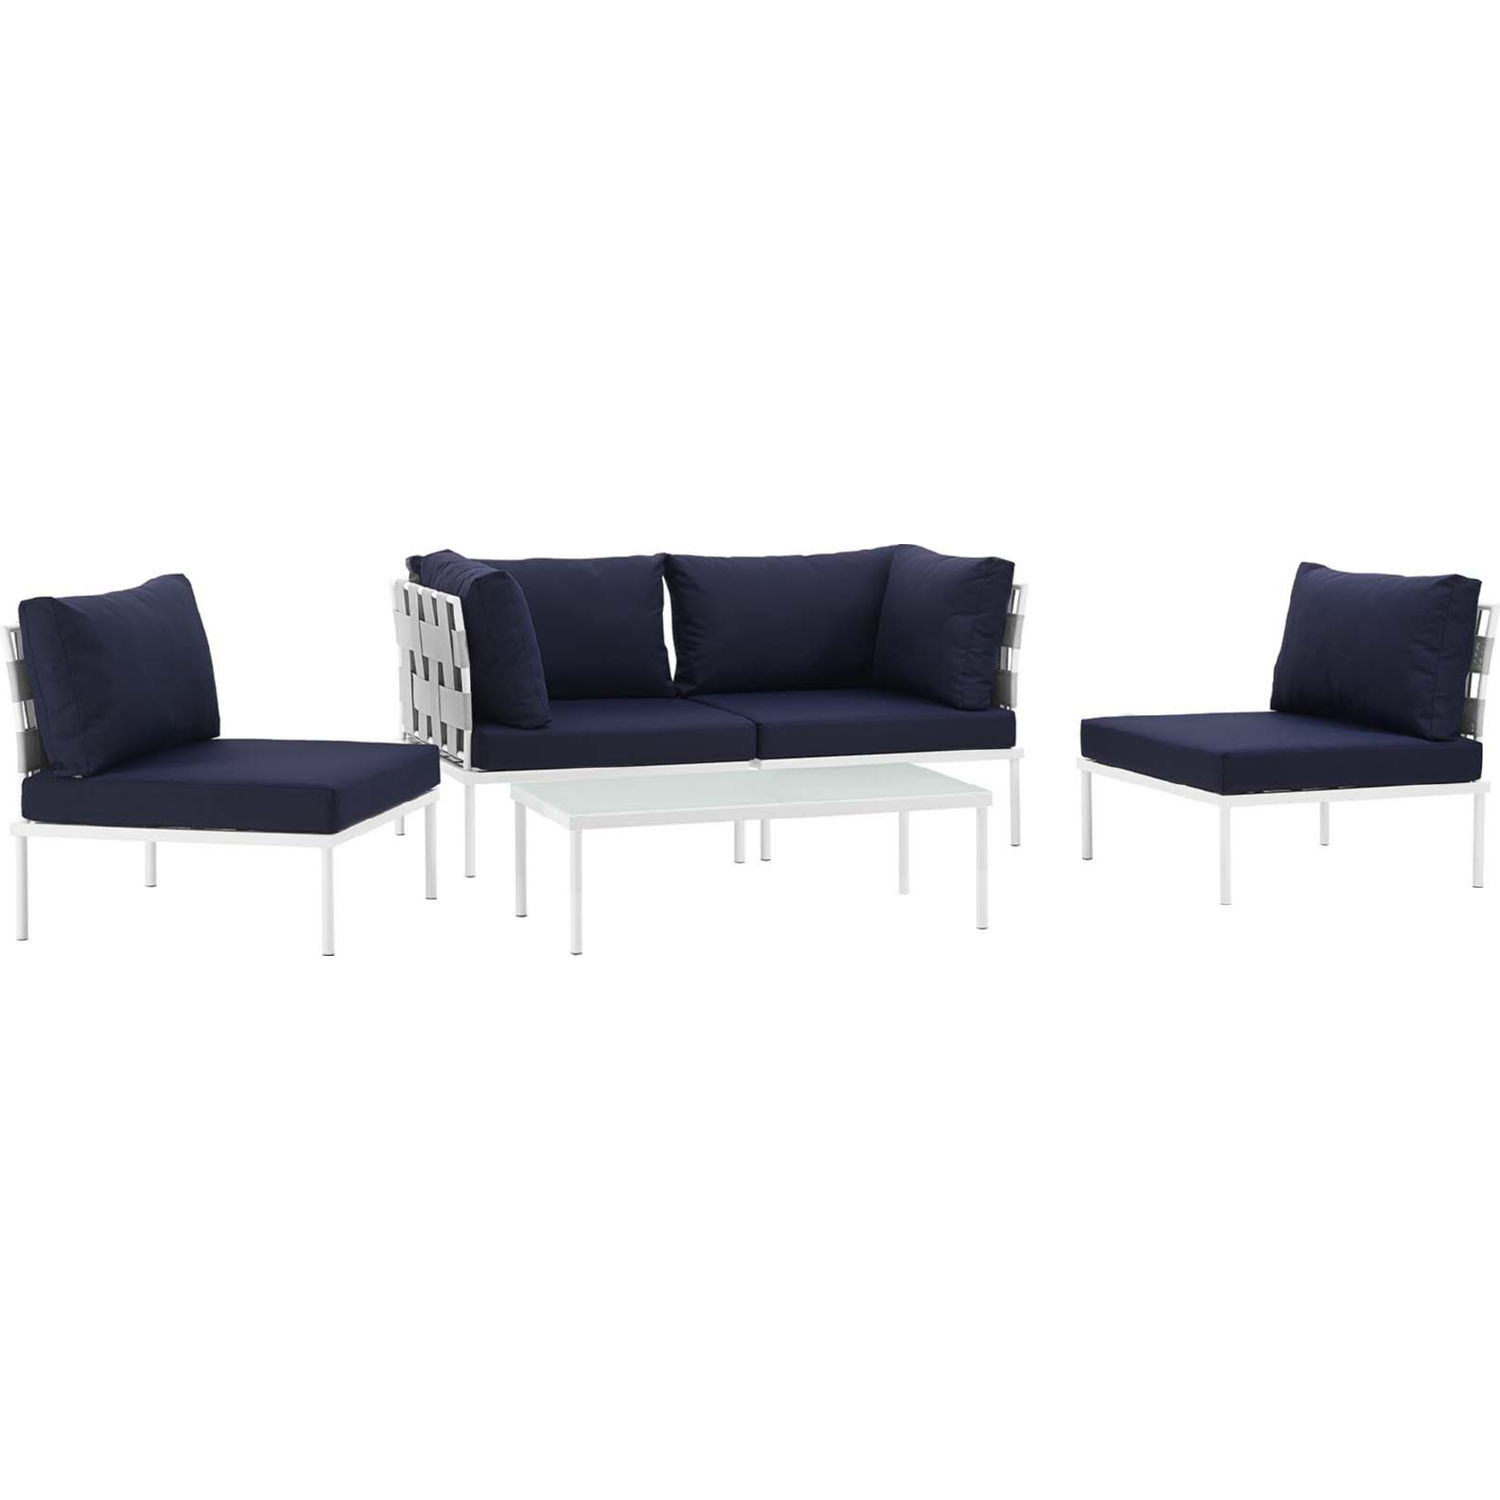 Harmony 5 Piece Outdoor Sectional Sofa Set in White w/ Navy Blue Fabric by  Modway